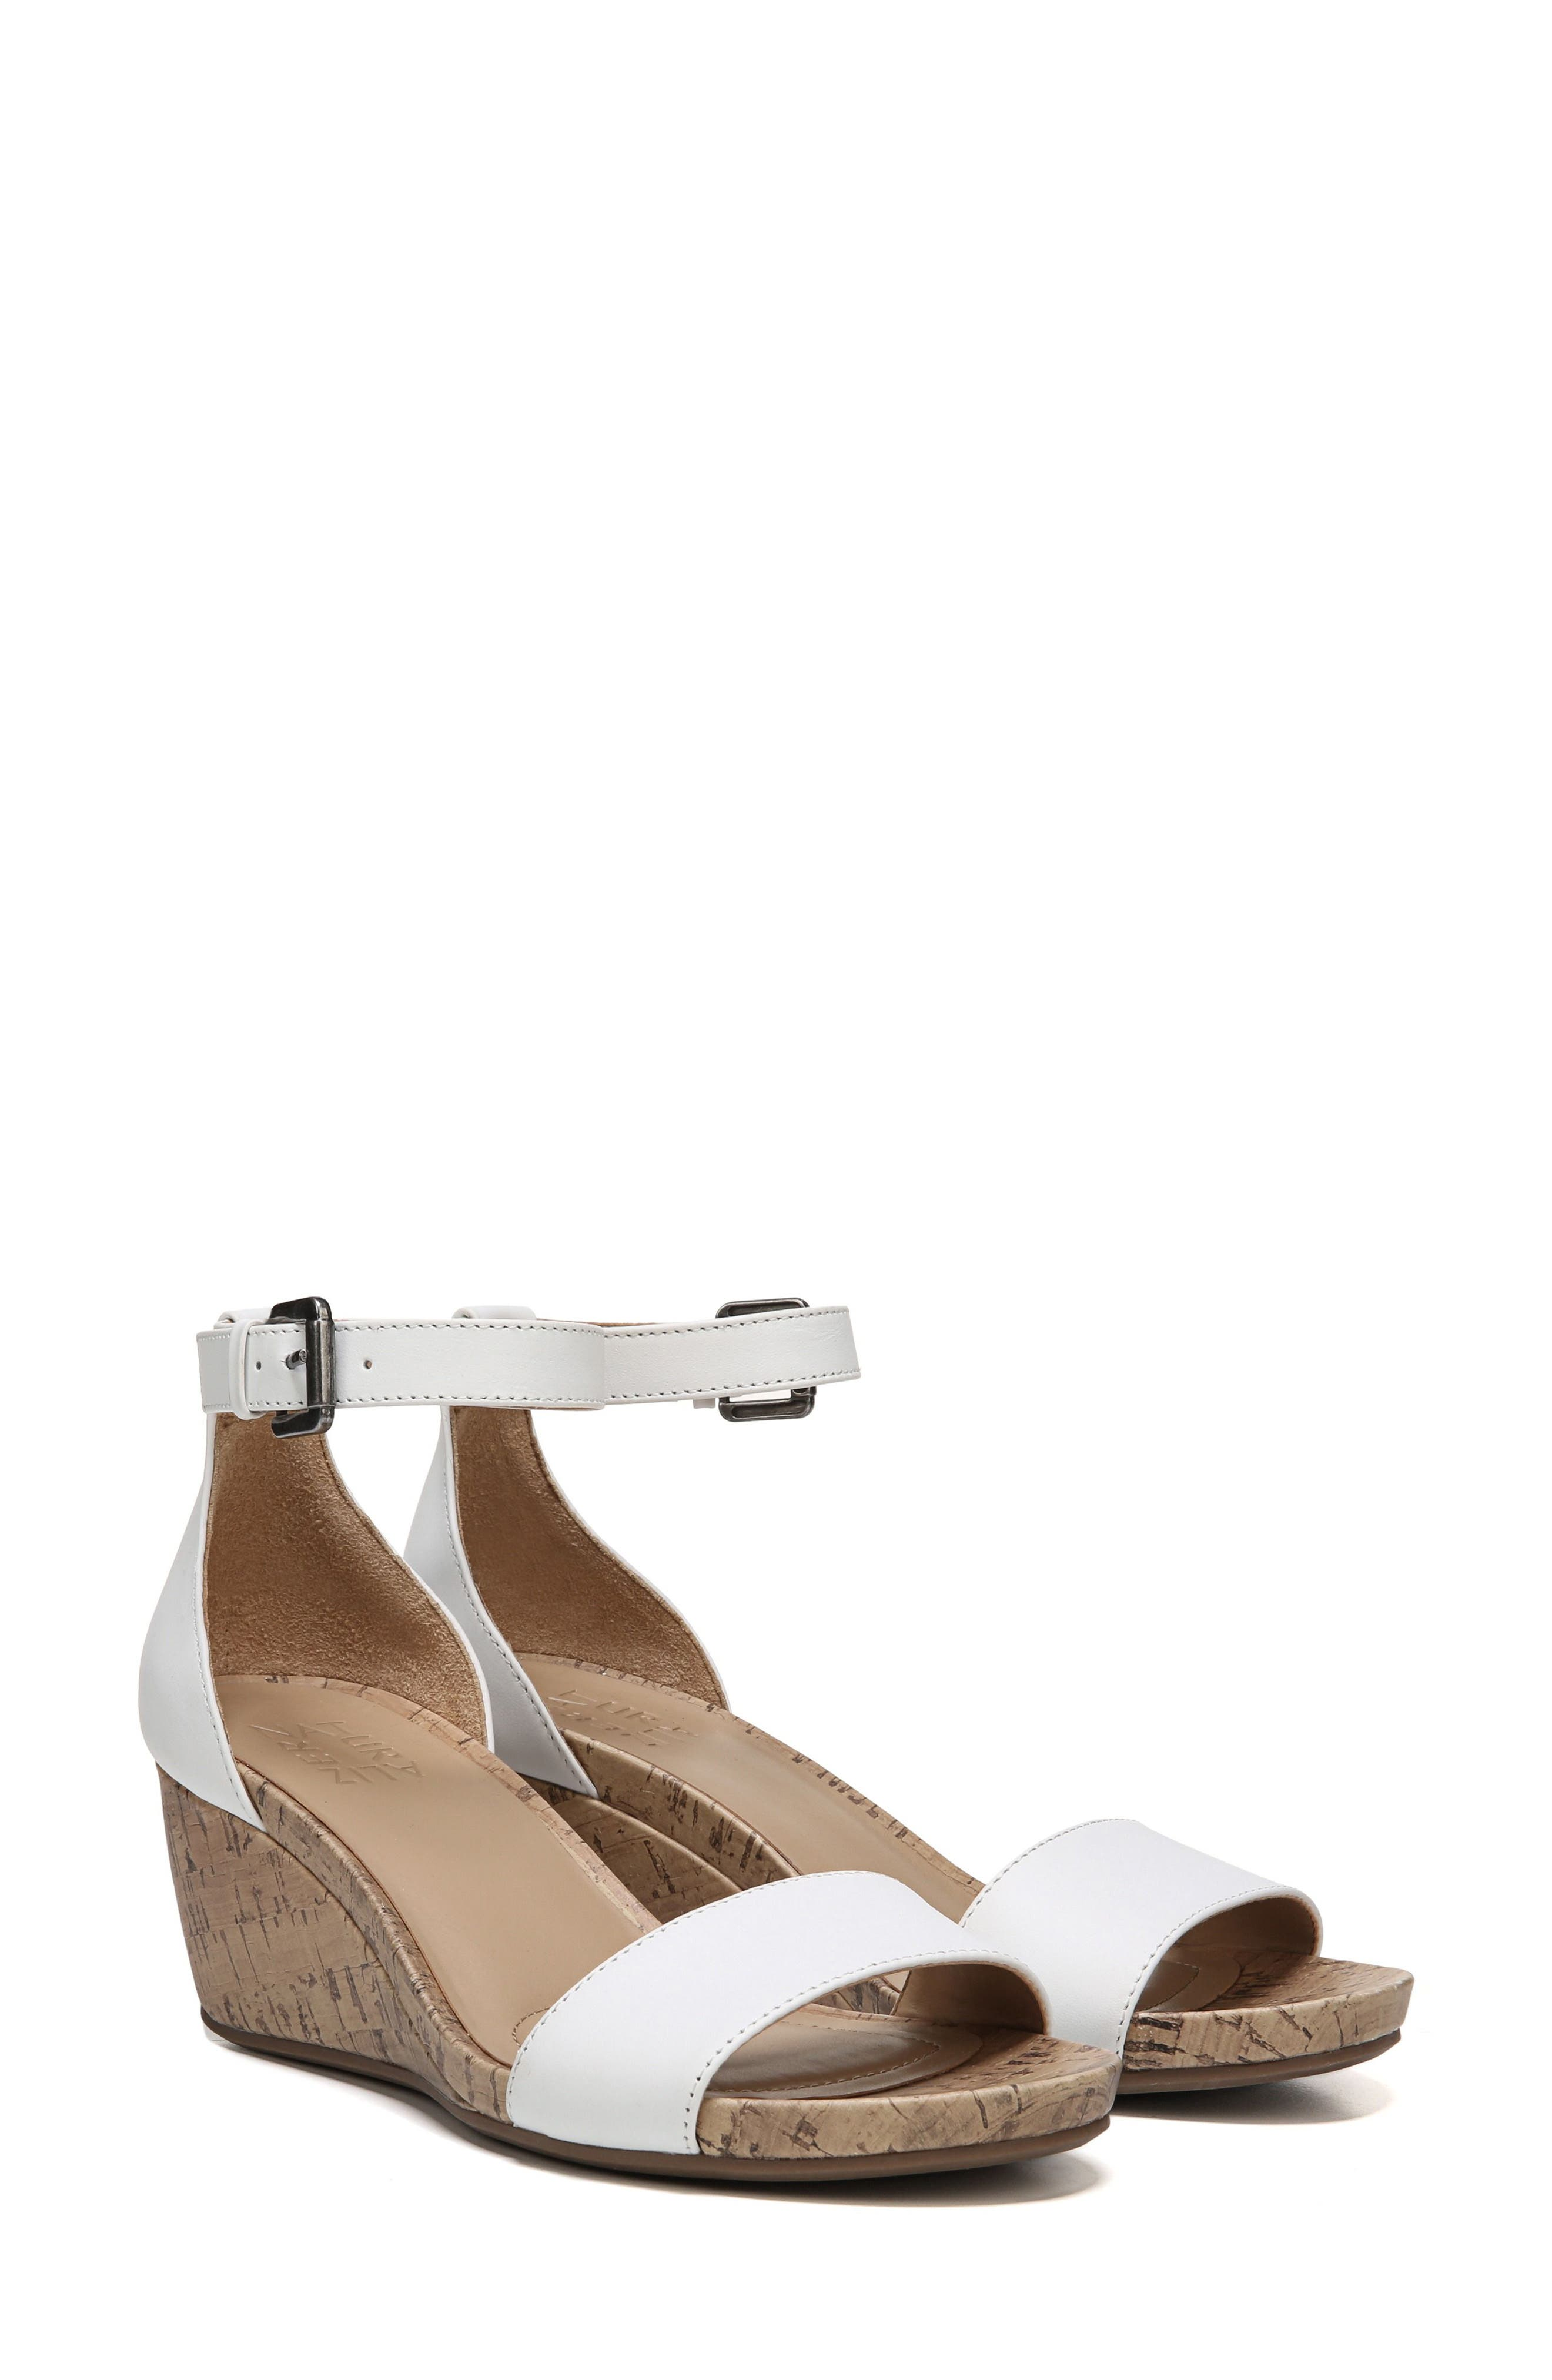 Cami Wedge Sandal,                             Main thumbnail 1, color,                             WHITE LEATHER